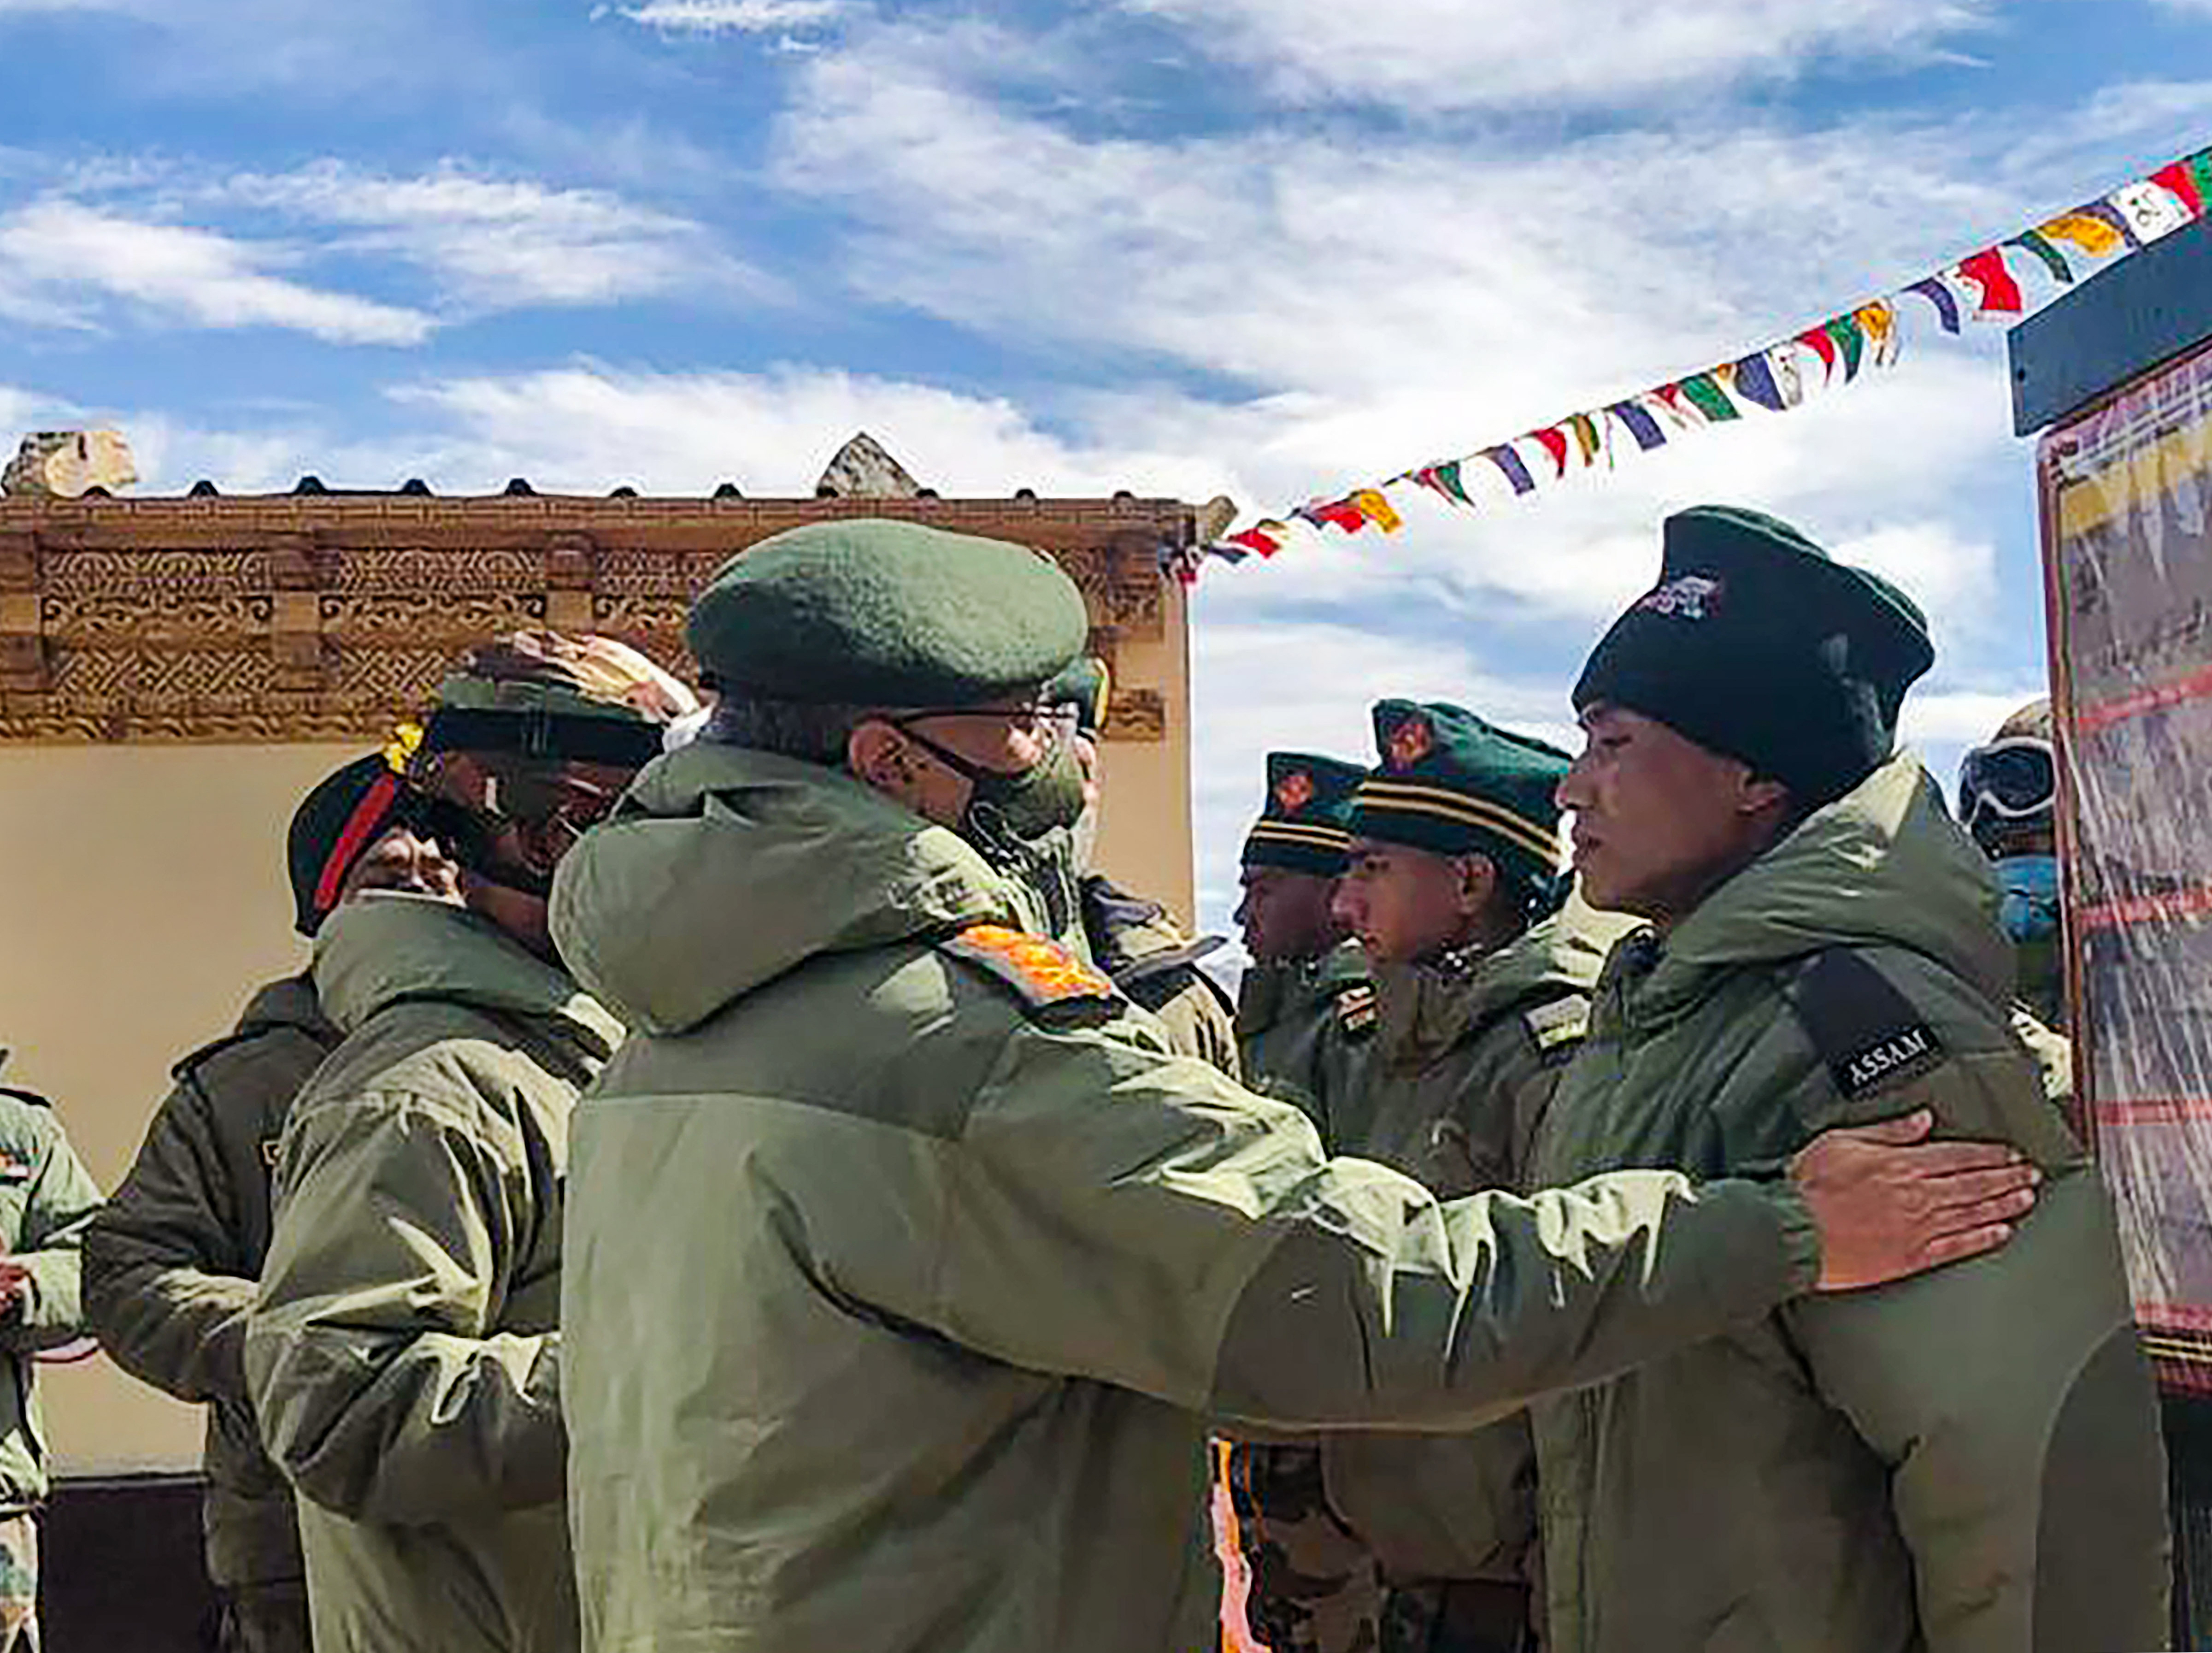 Army Chief Manoj Mukund Naravane interacts with troops while reviewing operational situations on the ground after the stand-off in the region during his visit in Eastern Ladakh on Wednesday.